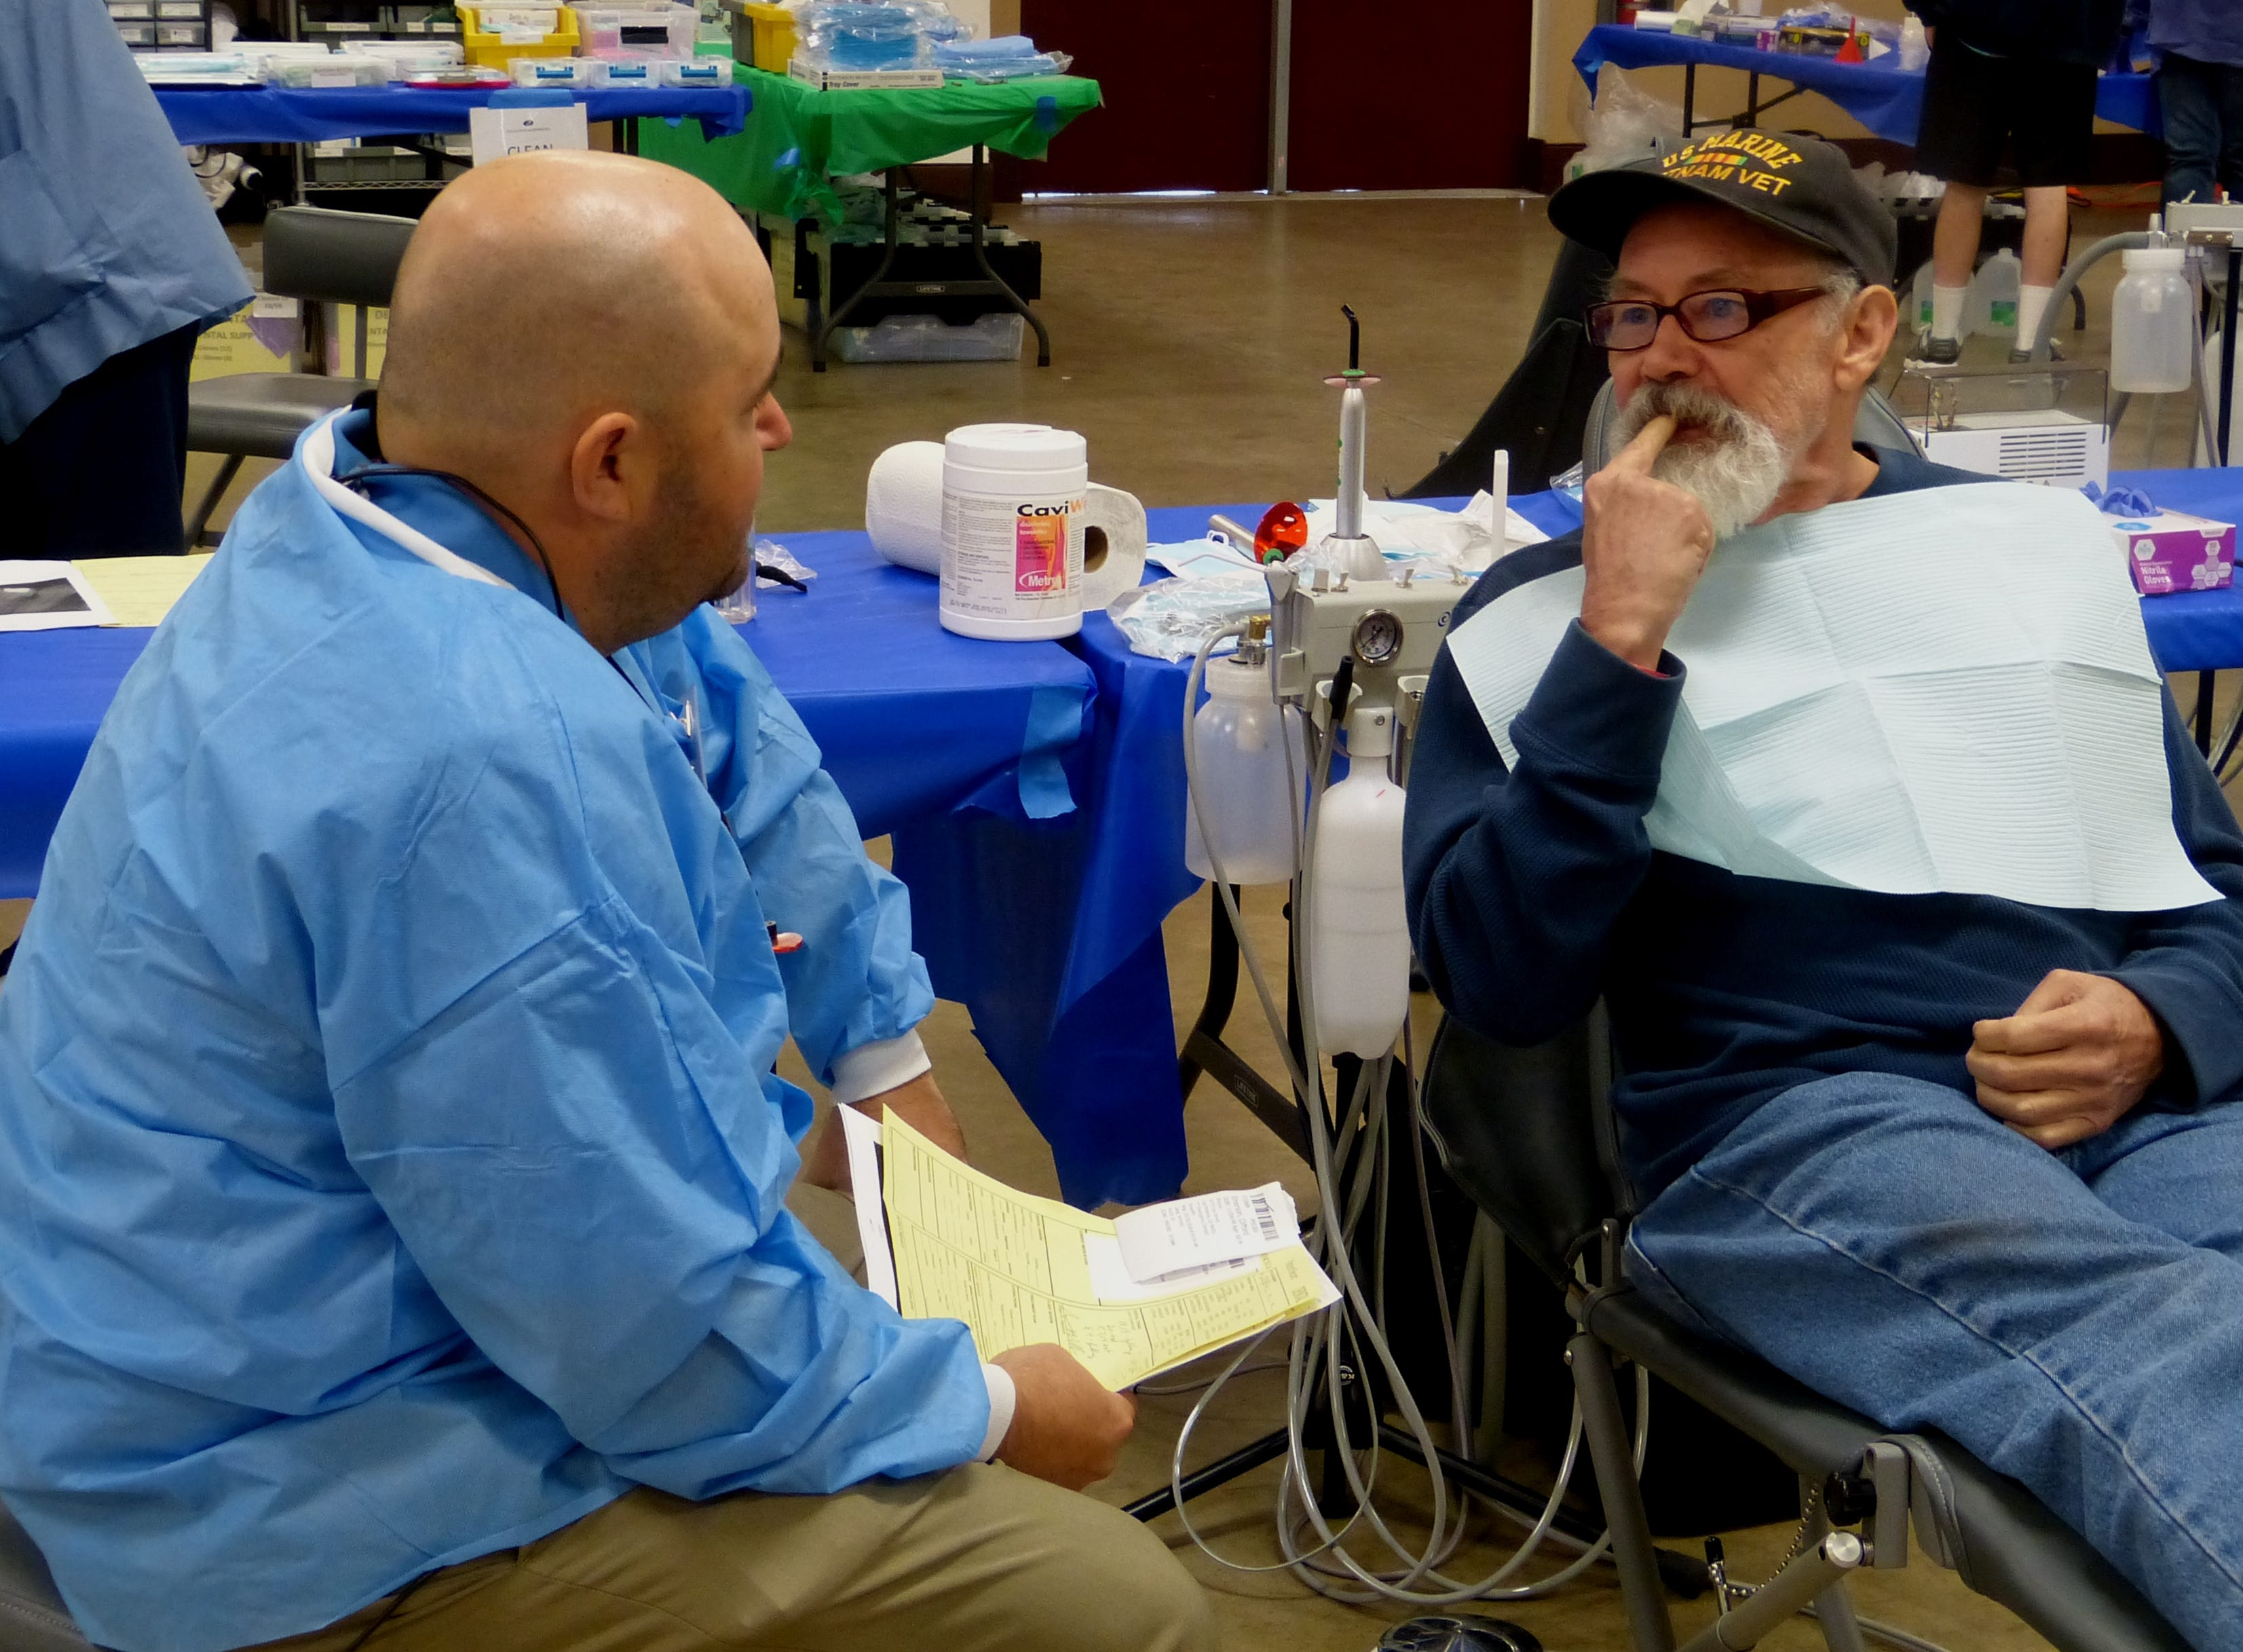 Veteran Cliff Emerson confers with dentist Maurice Trusas at the North Valley Stand Down.